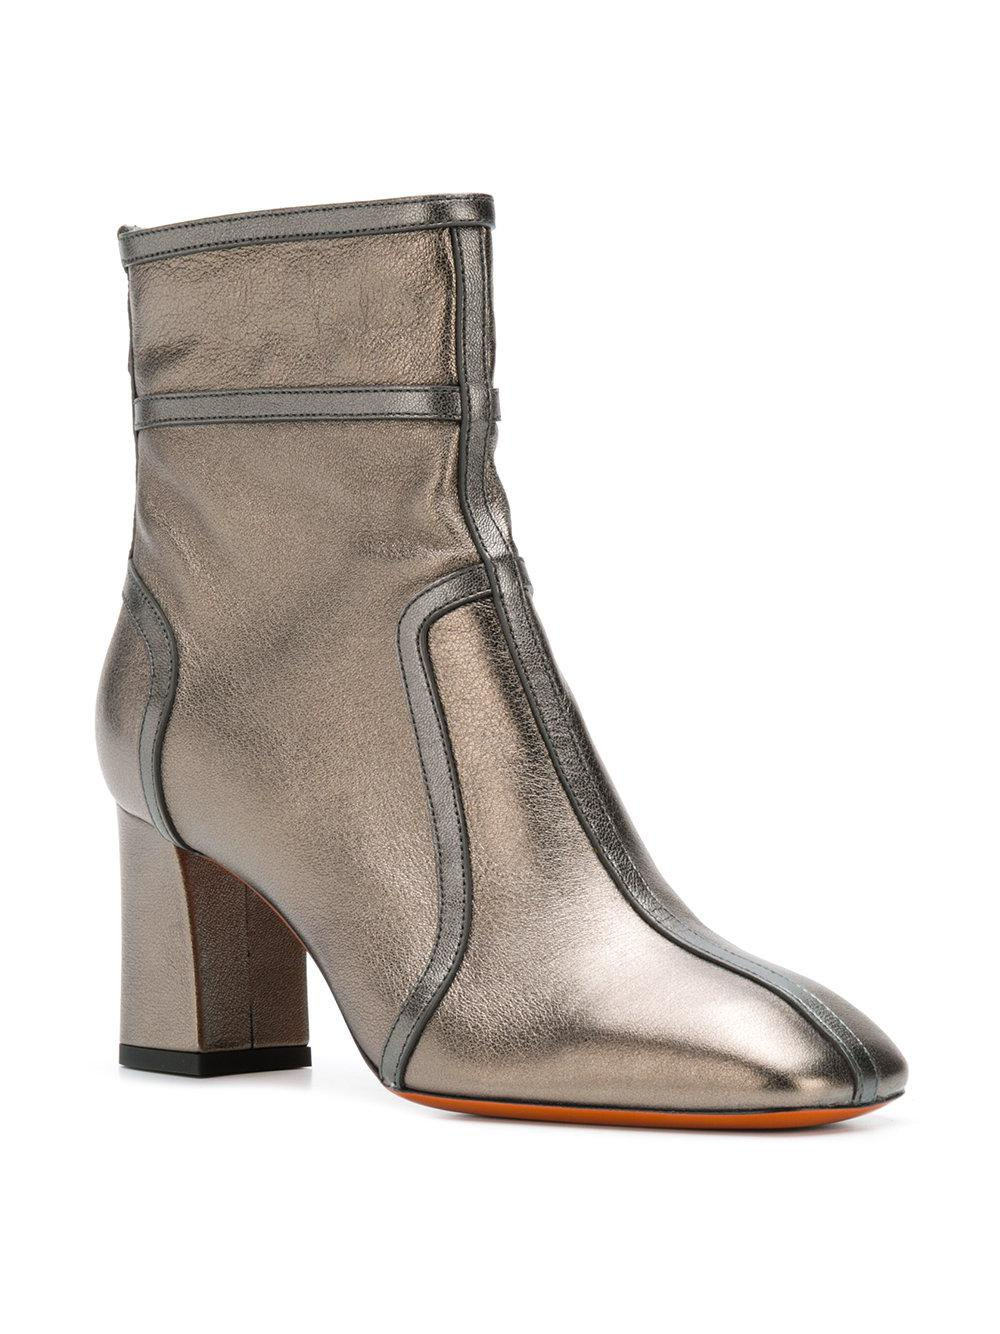 Santoni metallic ankle boots shipping discount sale outlet amazon newest sale online NDbYawR